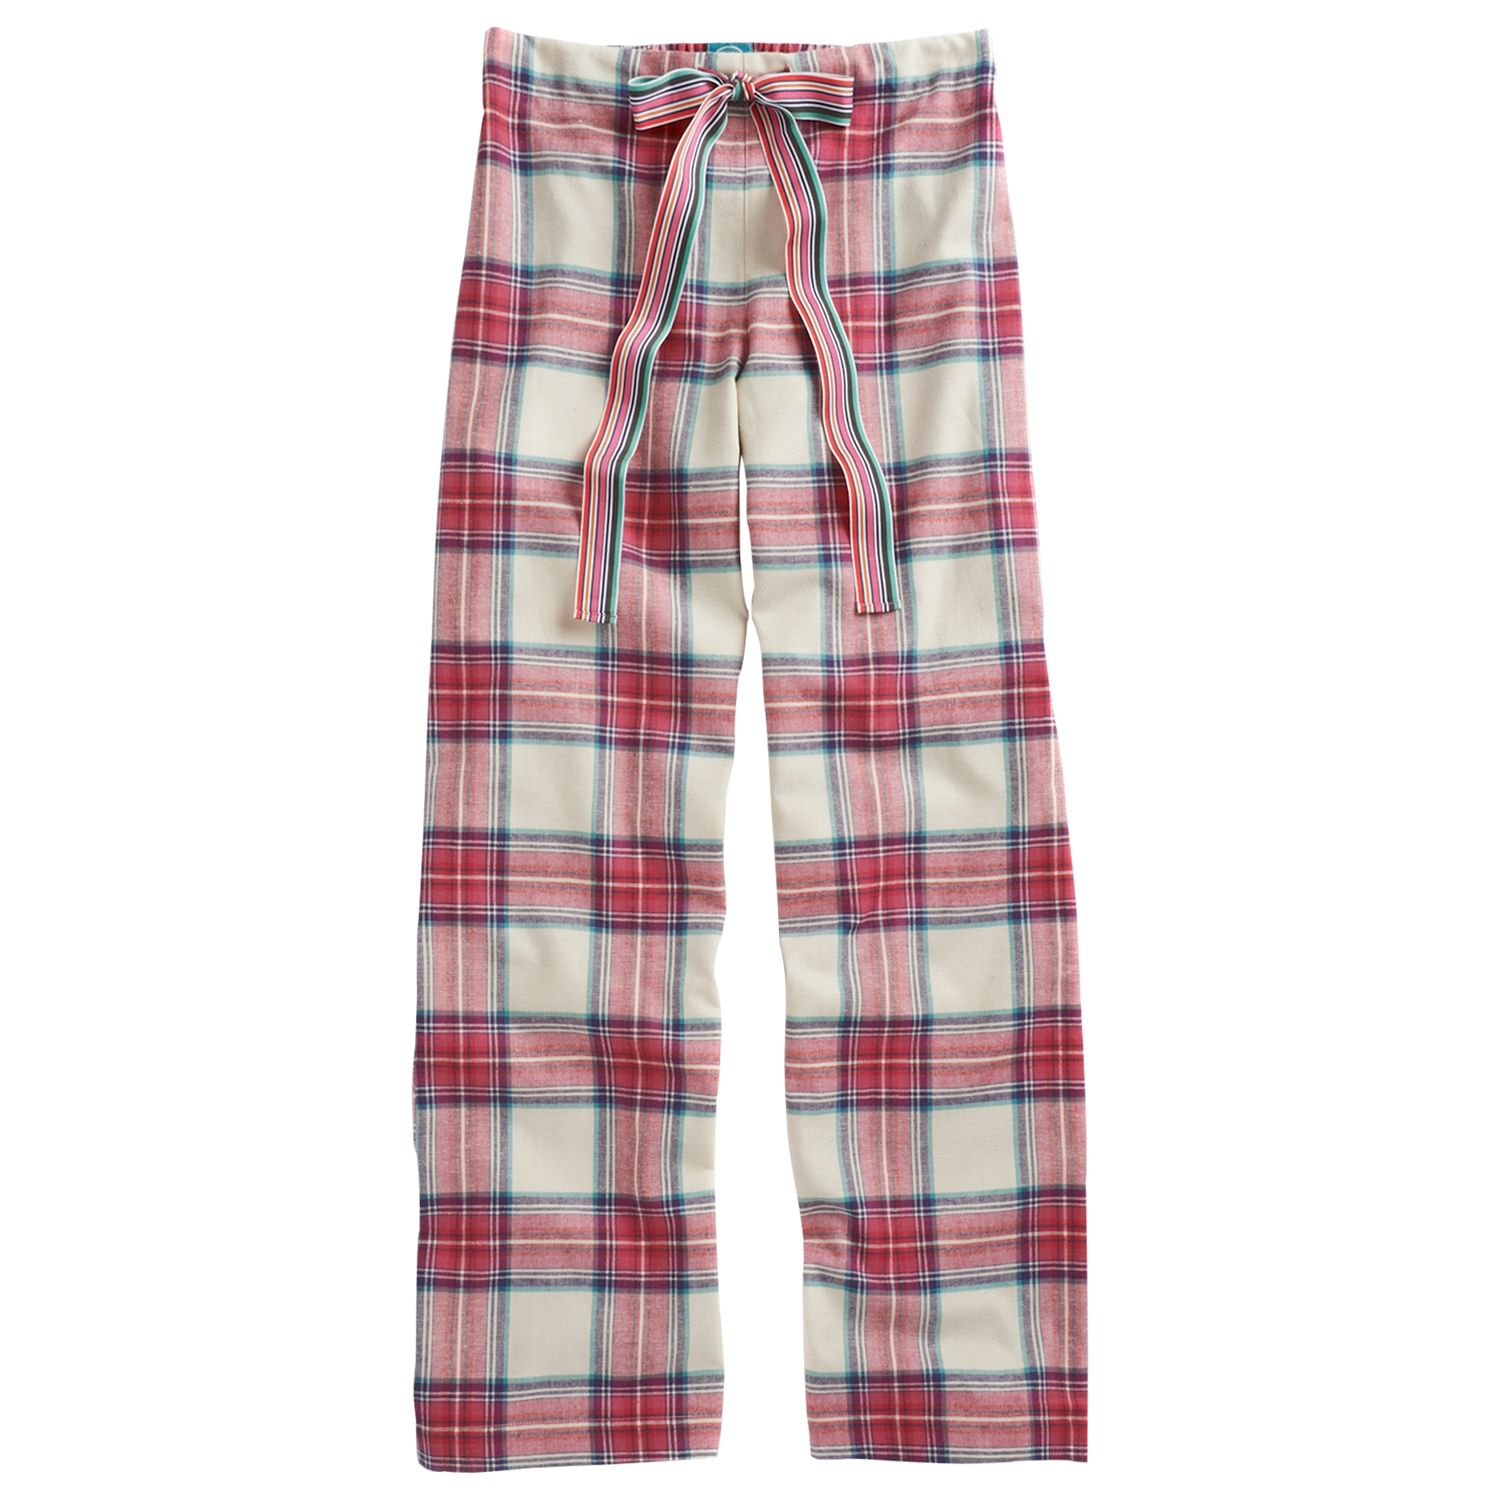 Joules Fleur Check Print Pyjama Trousers, Red